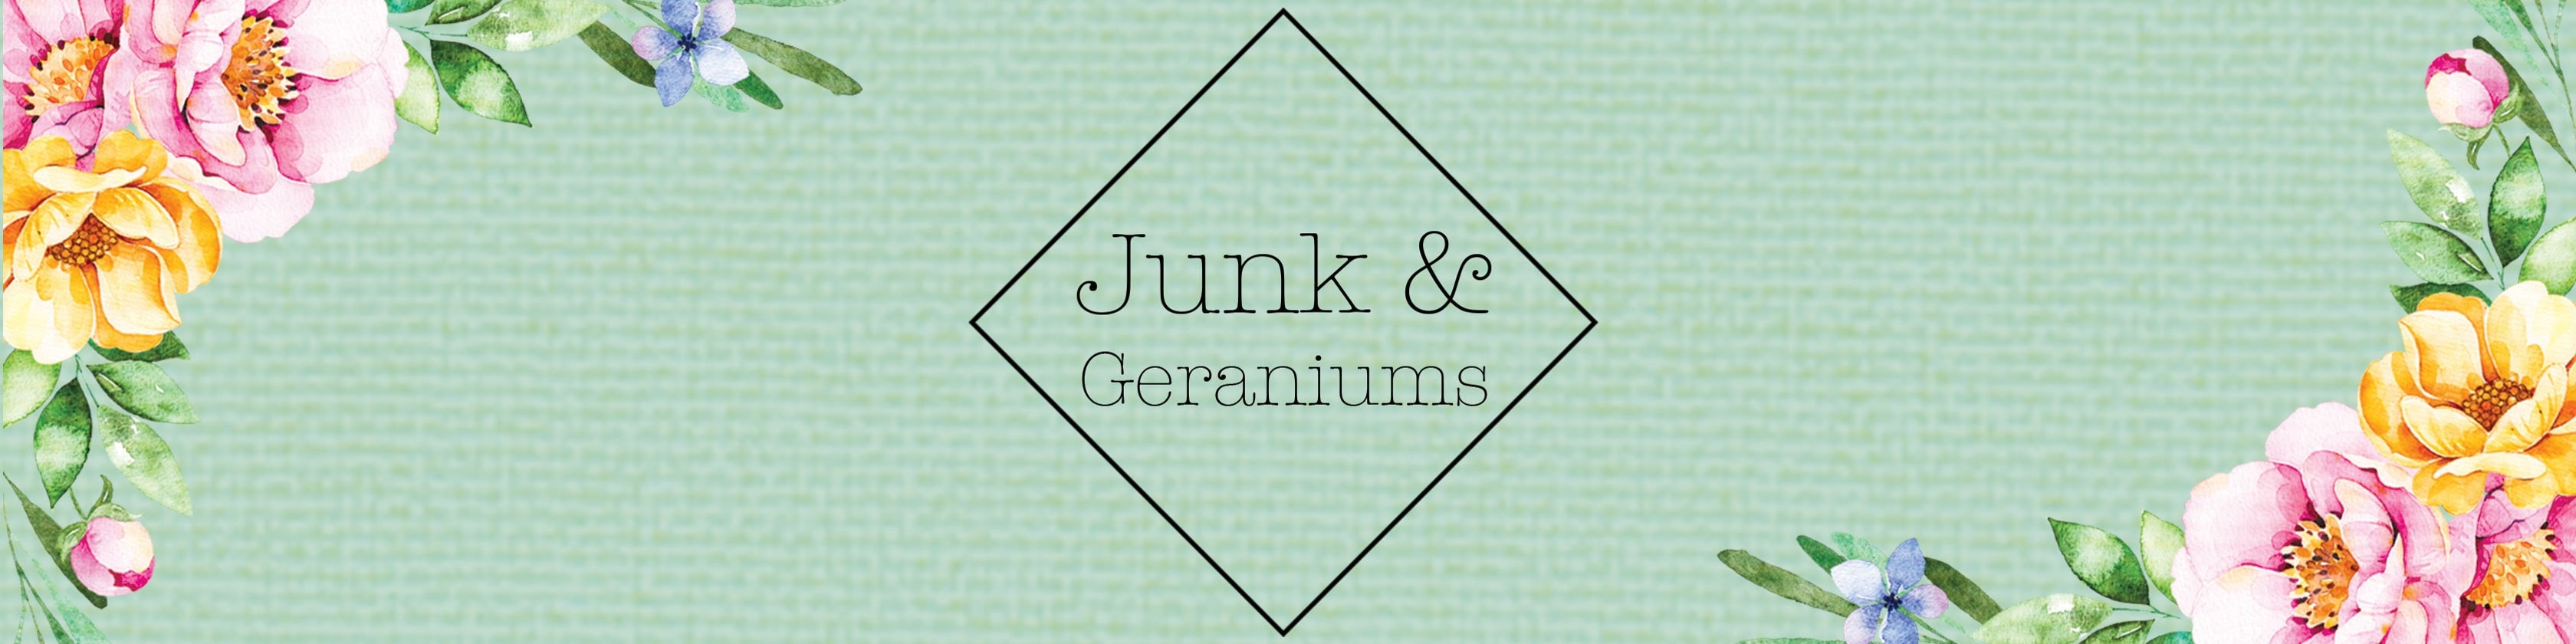 Junk & Geraniums on Etsy